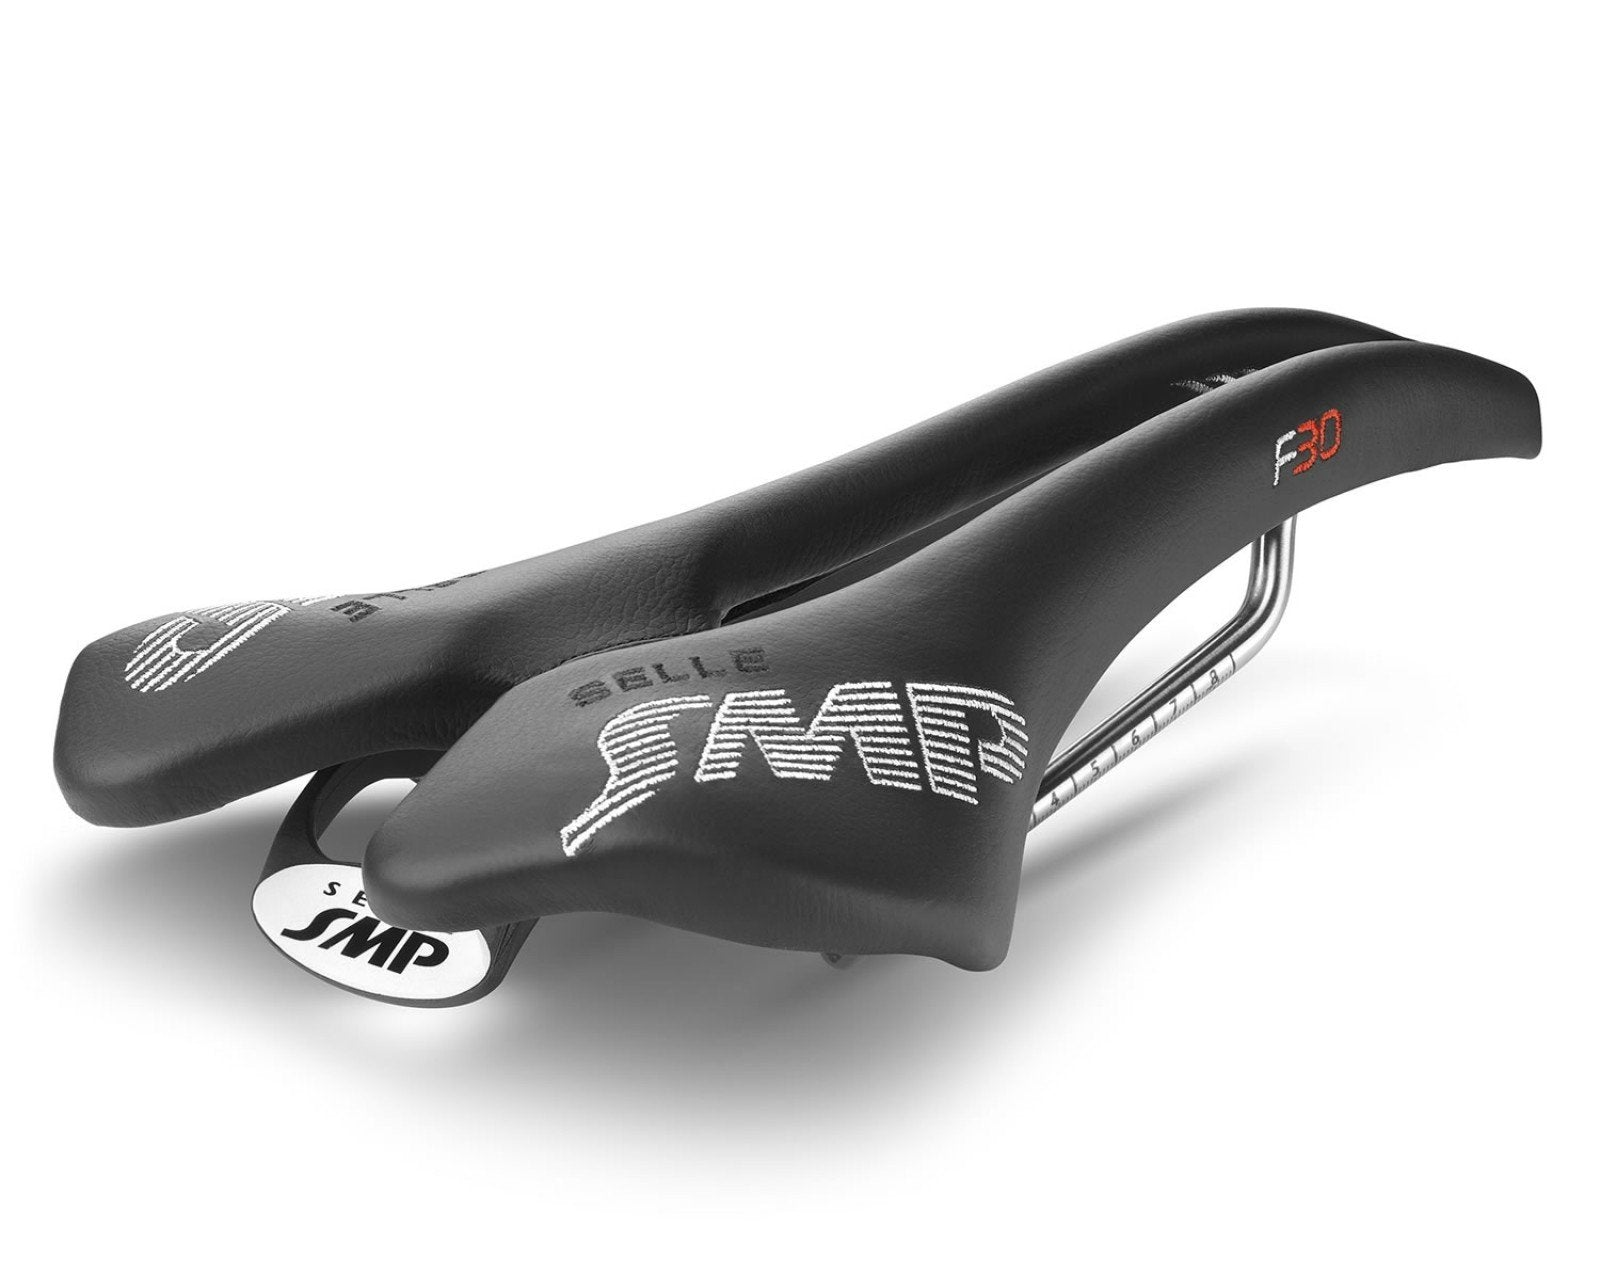 Selle SMP F30 Carbon Saddle  - TUNE cycles